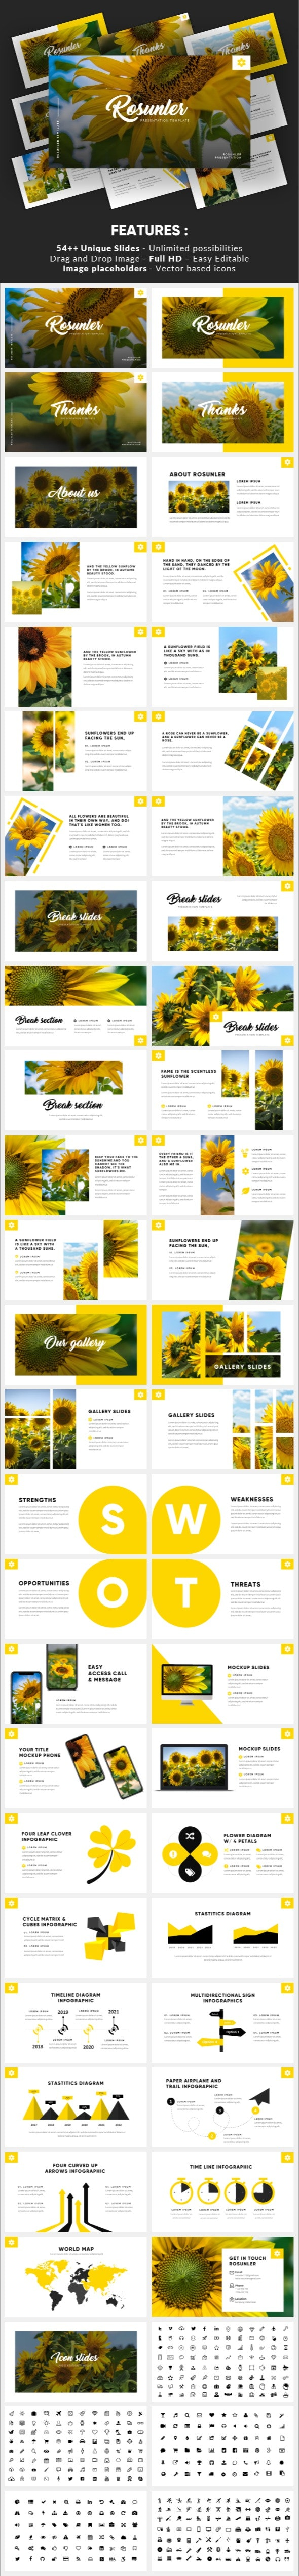 Rosunler - Minimalism Tropical Powerpoint Template - Miscellaneous PowerPoint Templates